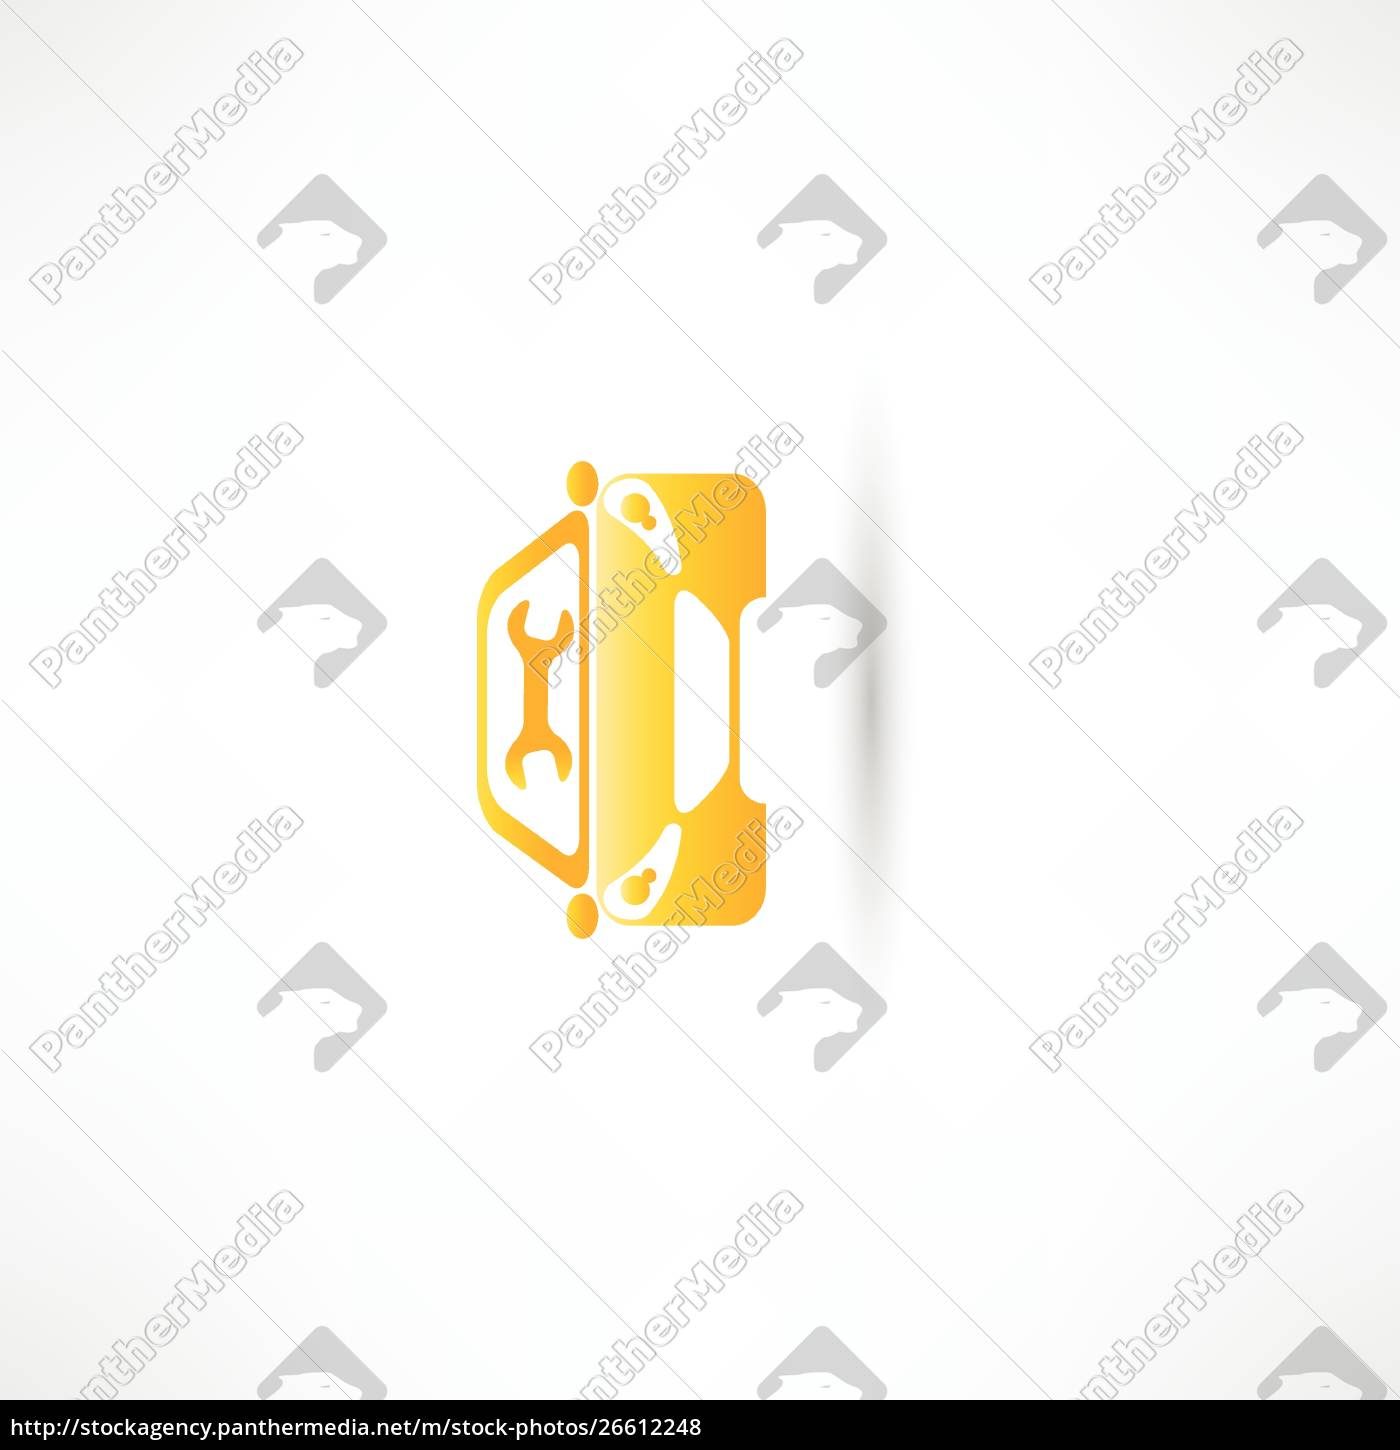 yellow, front, car - 26612248